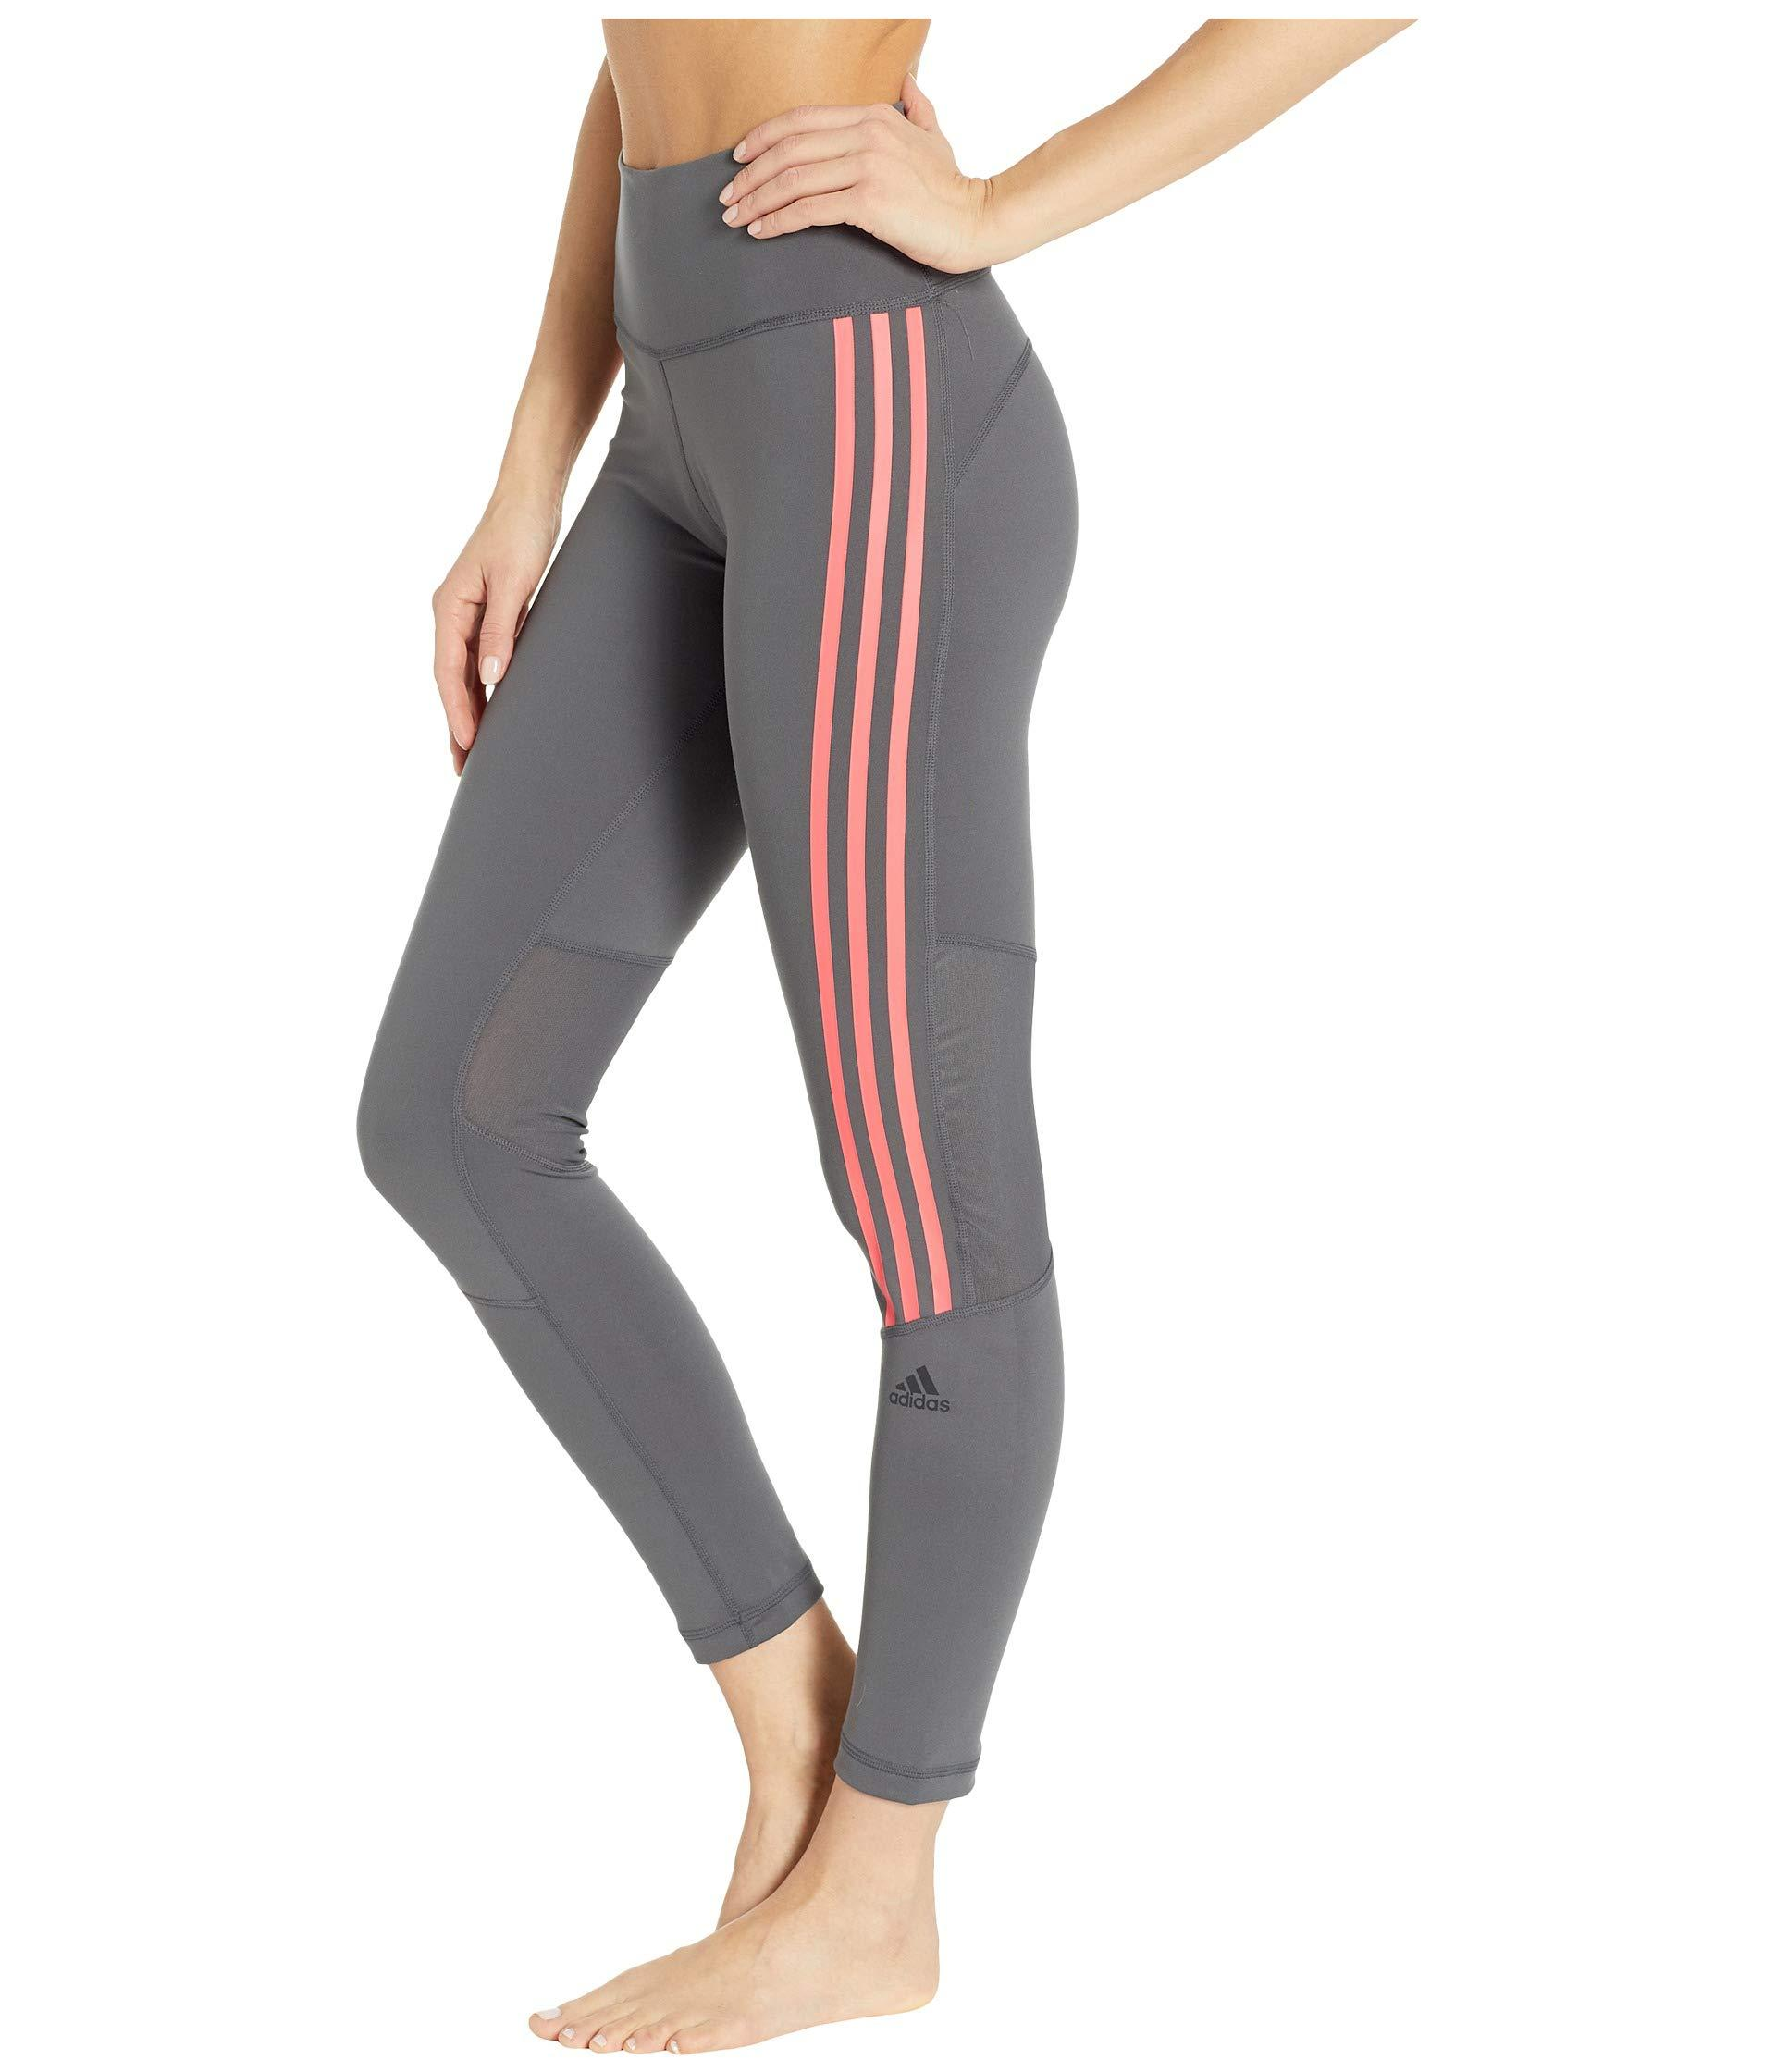 a166dae035ce Lyst - adidas Believe This High-rise 3-stripes 7 8 Tights (black white)  Women s Casual Pants in Gray